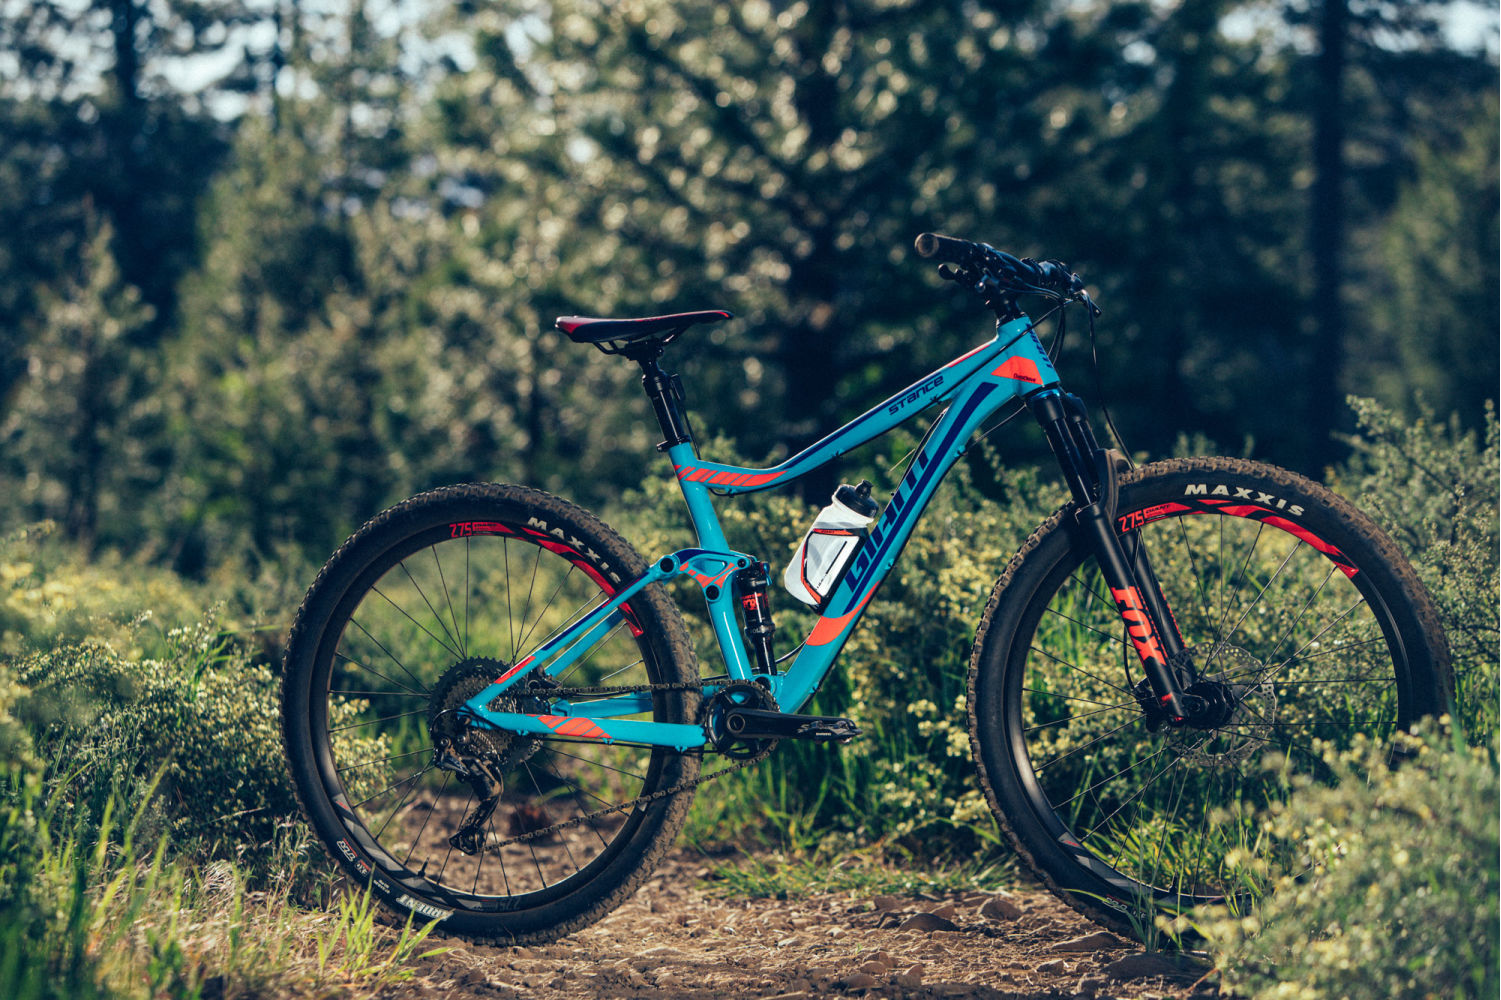 Stance 2018 Giant Bicycles Ireland Fork Sr Suntor Epixion 275 Putih The 1 In Blue Neon Red Dark Availability Varies By Country